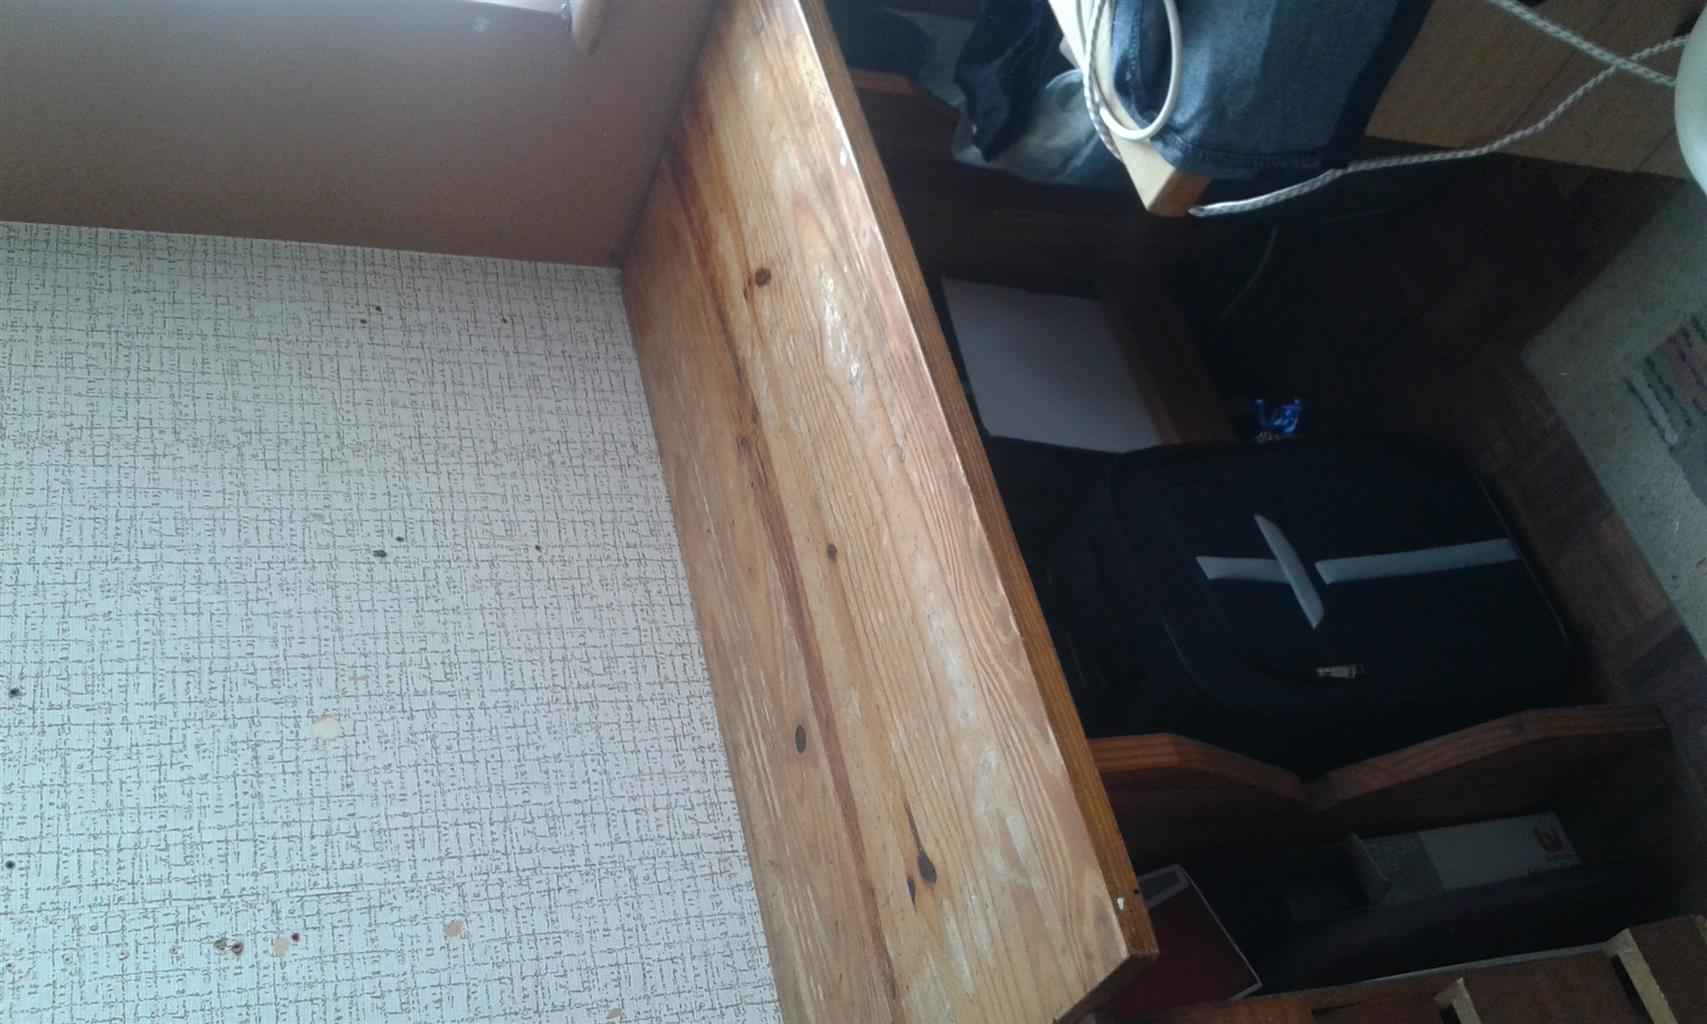 Table and 2 bunks for sale for R850 .Non negotiable